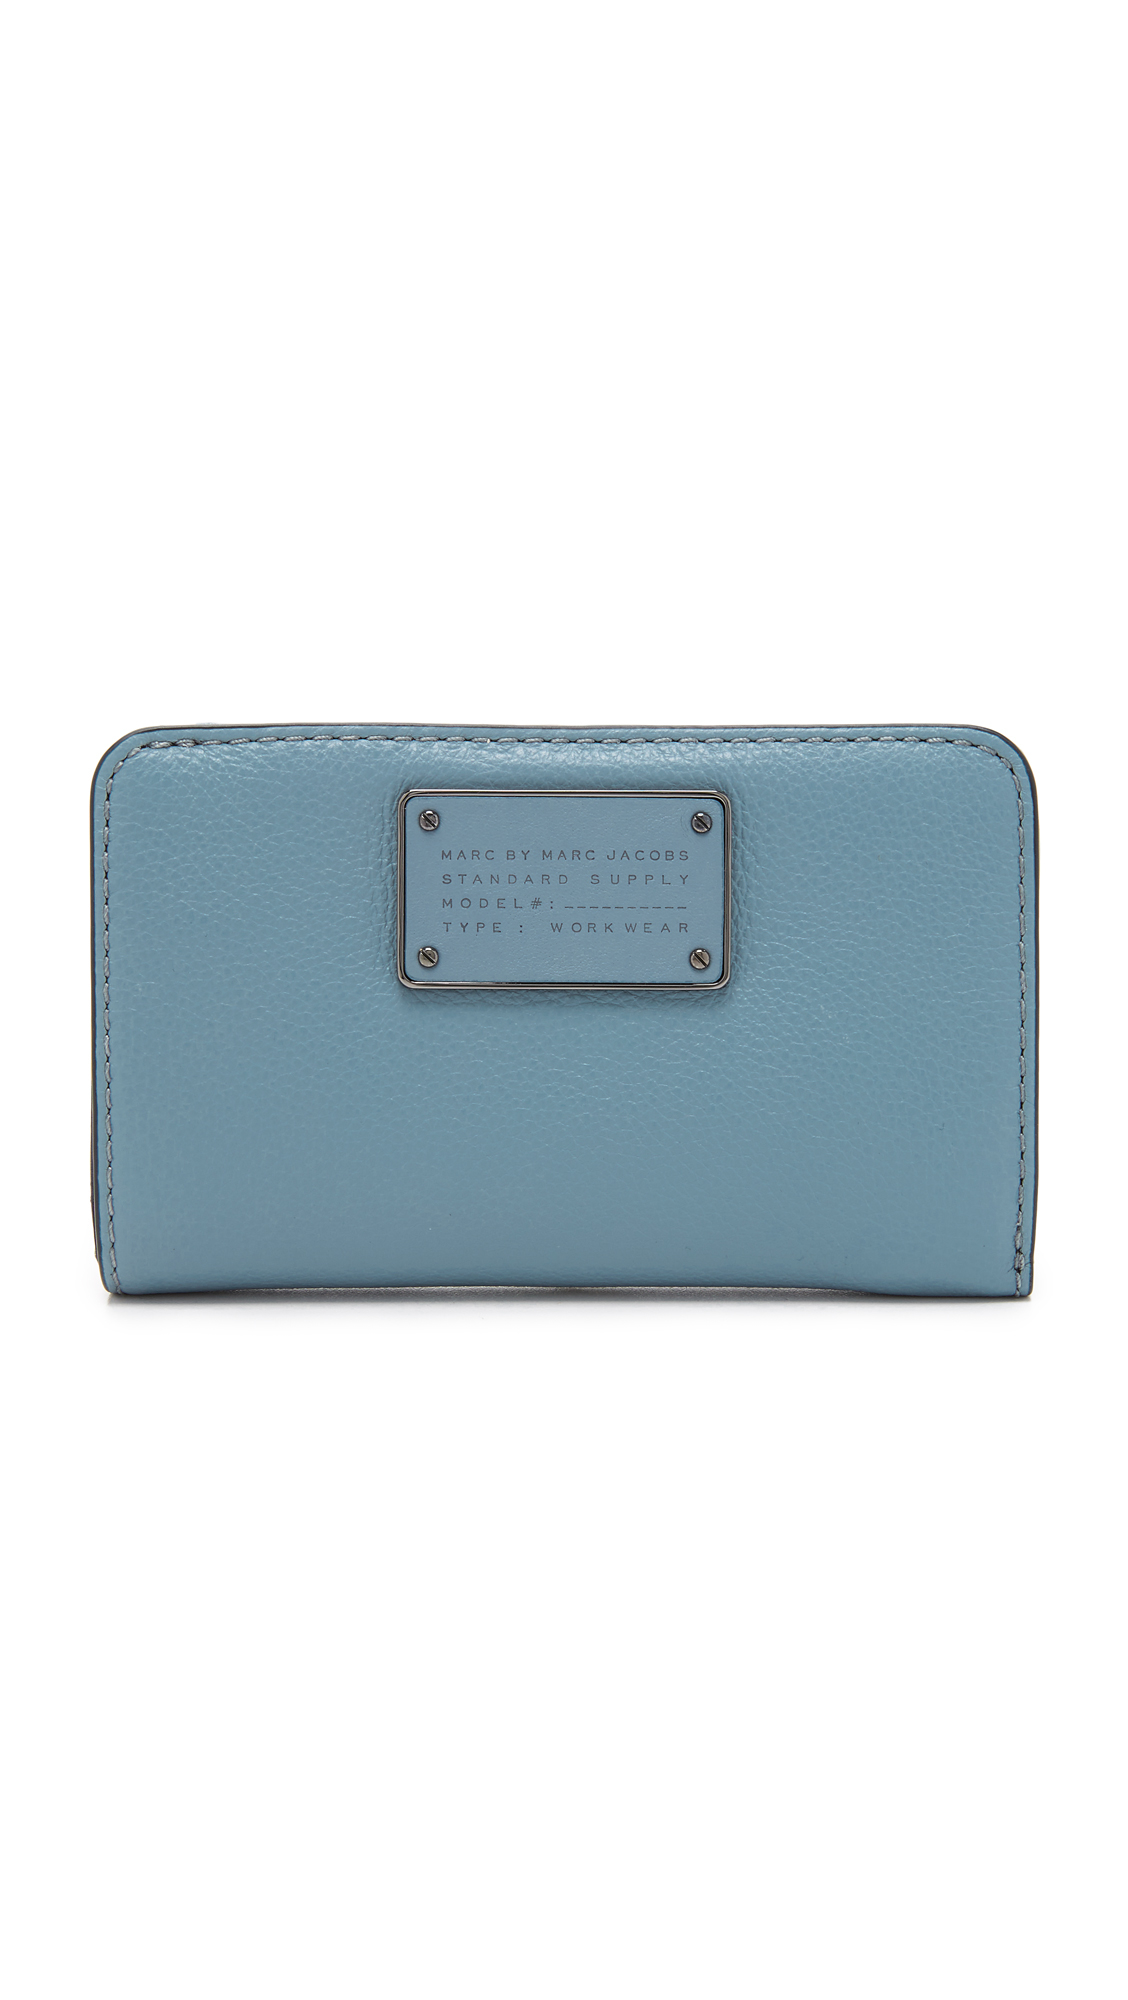 3aaef68a1b Marc By Marc Jacobs New Too Hot To Handle Lauren Wallet - Ice Blue ...